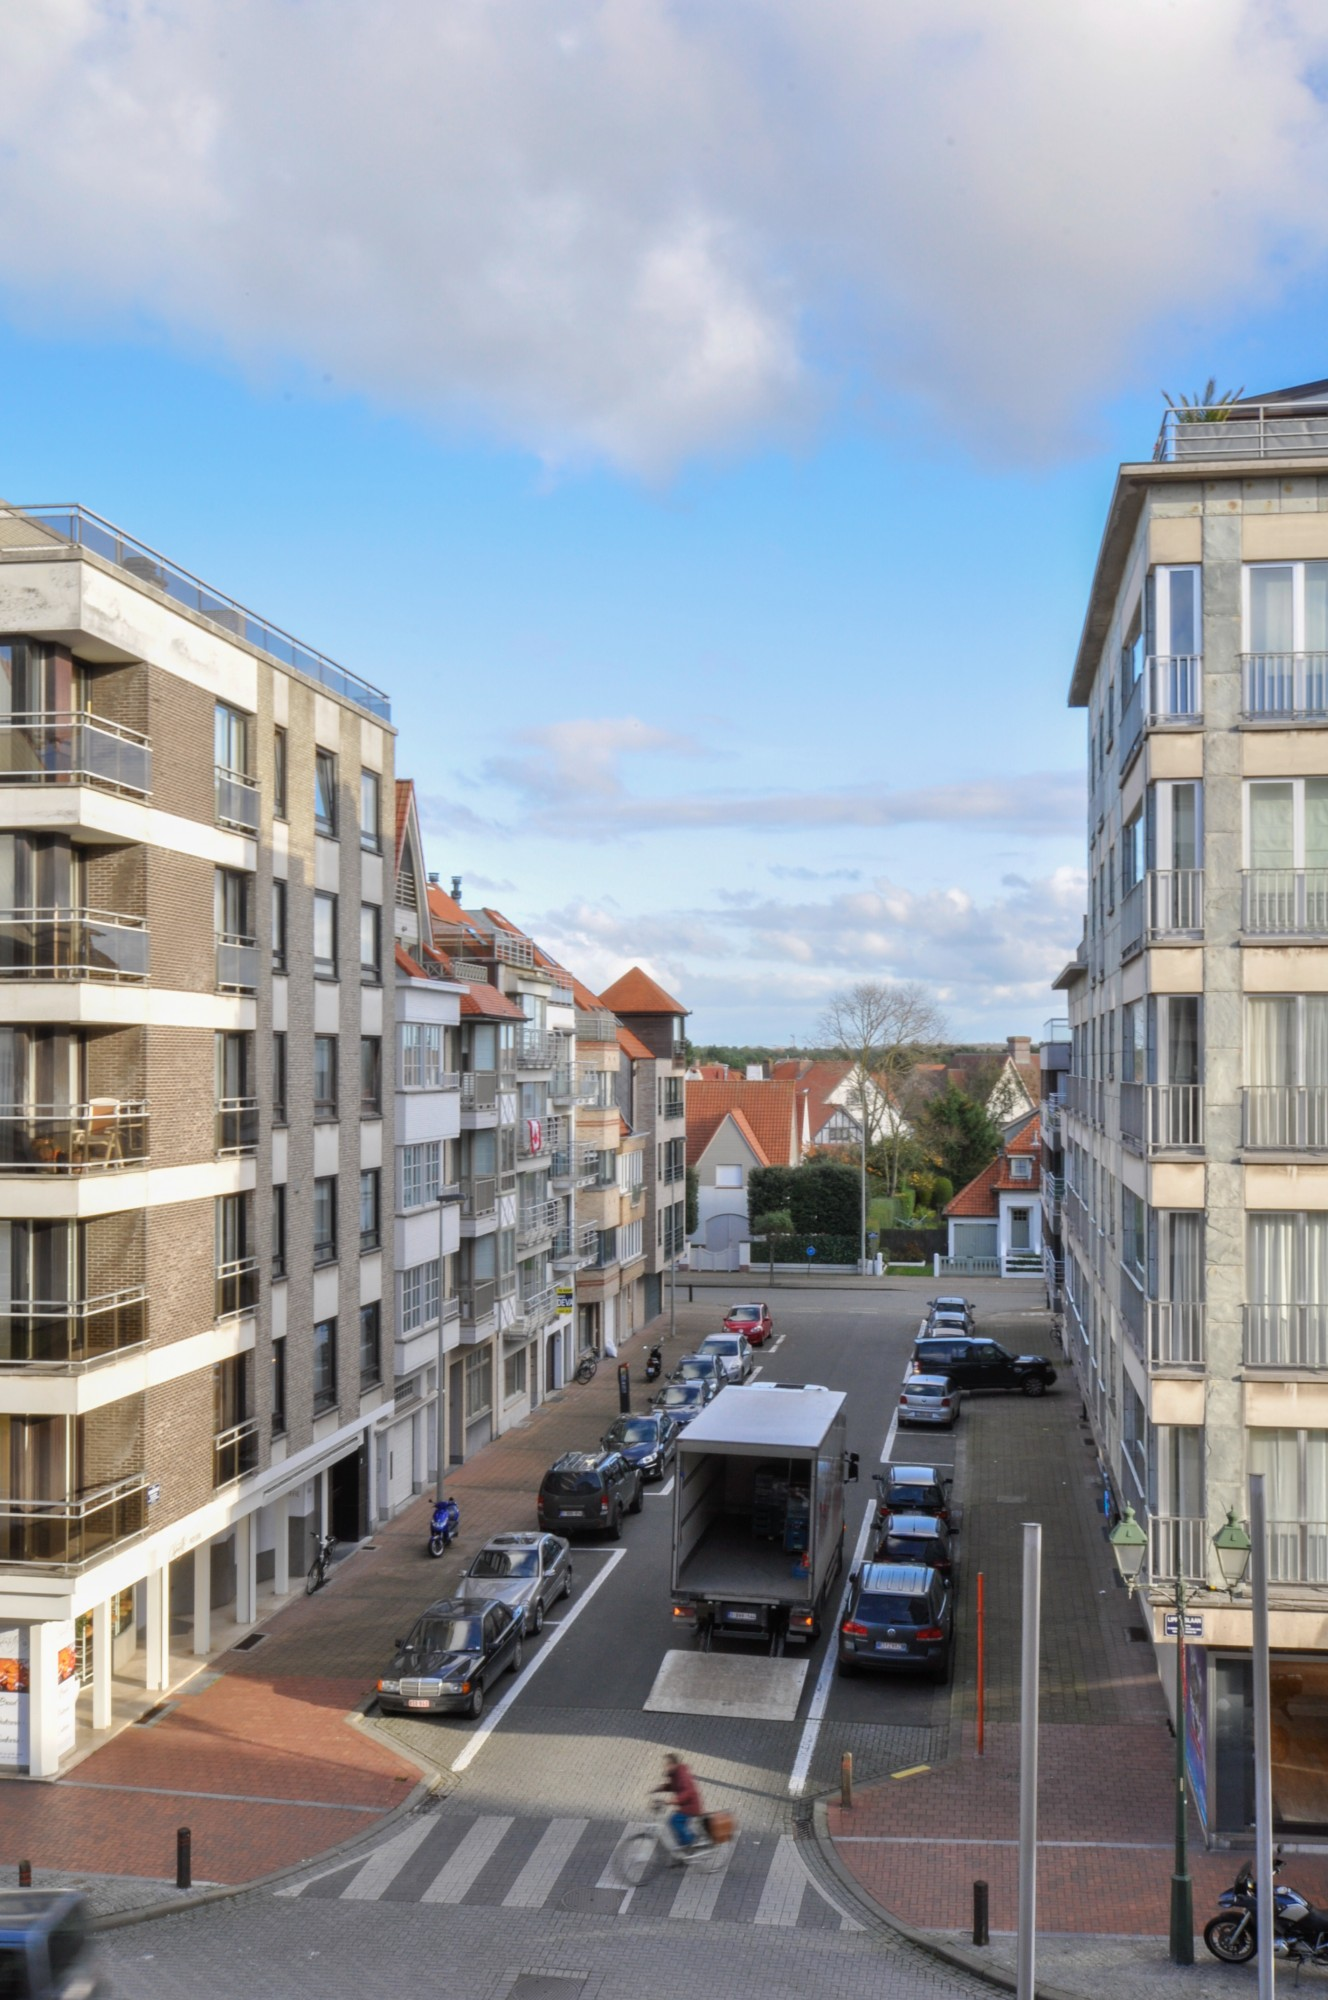 Ventes appartement t3 f3 knokke heist prachtige for Agence immobiliere knokke